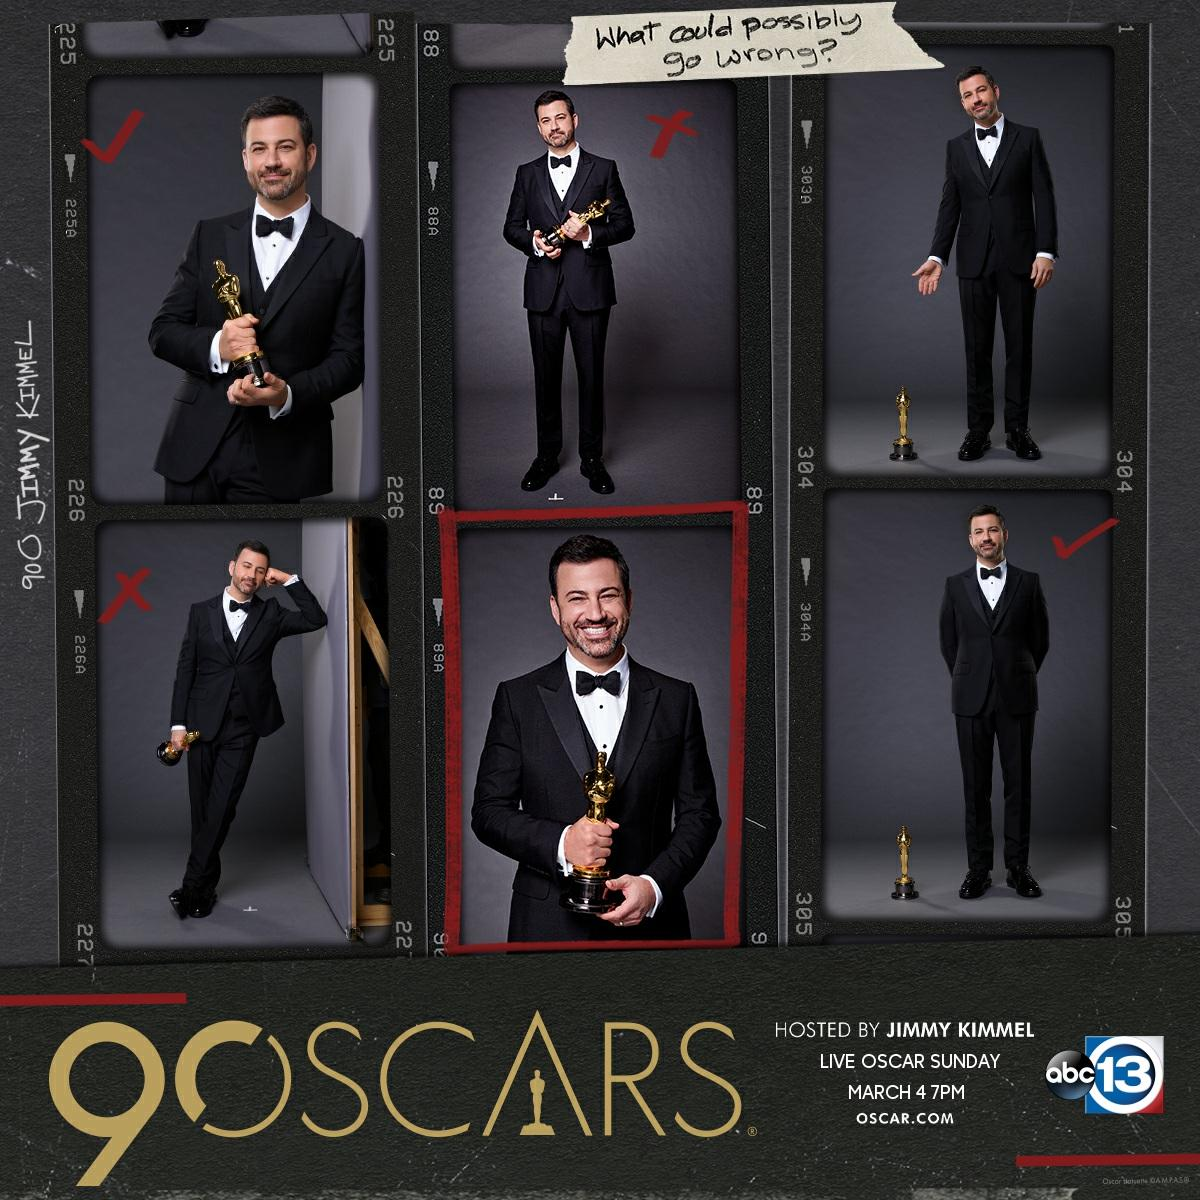 We're counting down to #OscarSunday on March 4!! #Redcarpet coverage starts at 4:30pm. The #Oscars hosted by @jimmykimmel start at 7pm.   Check out the full list of nominees:  https://t.co/zEV5zgt5qN